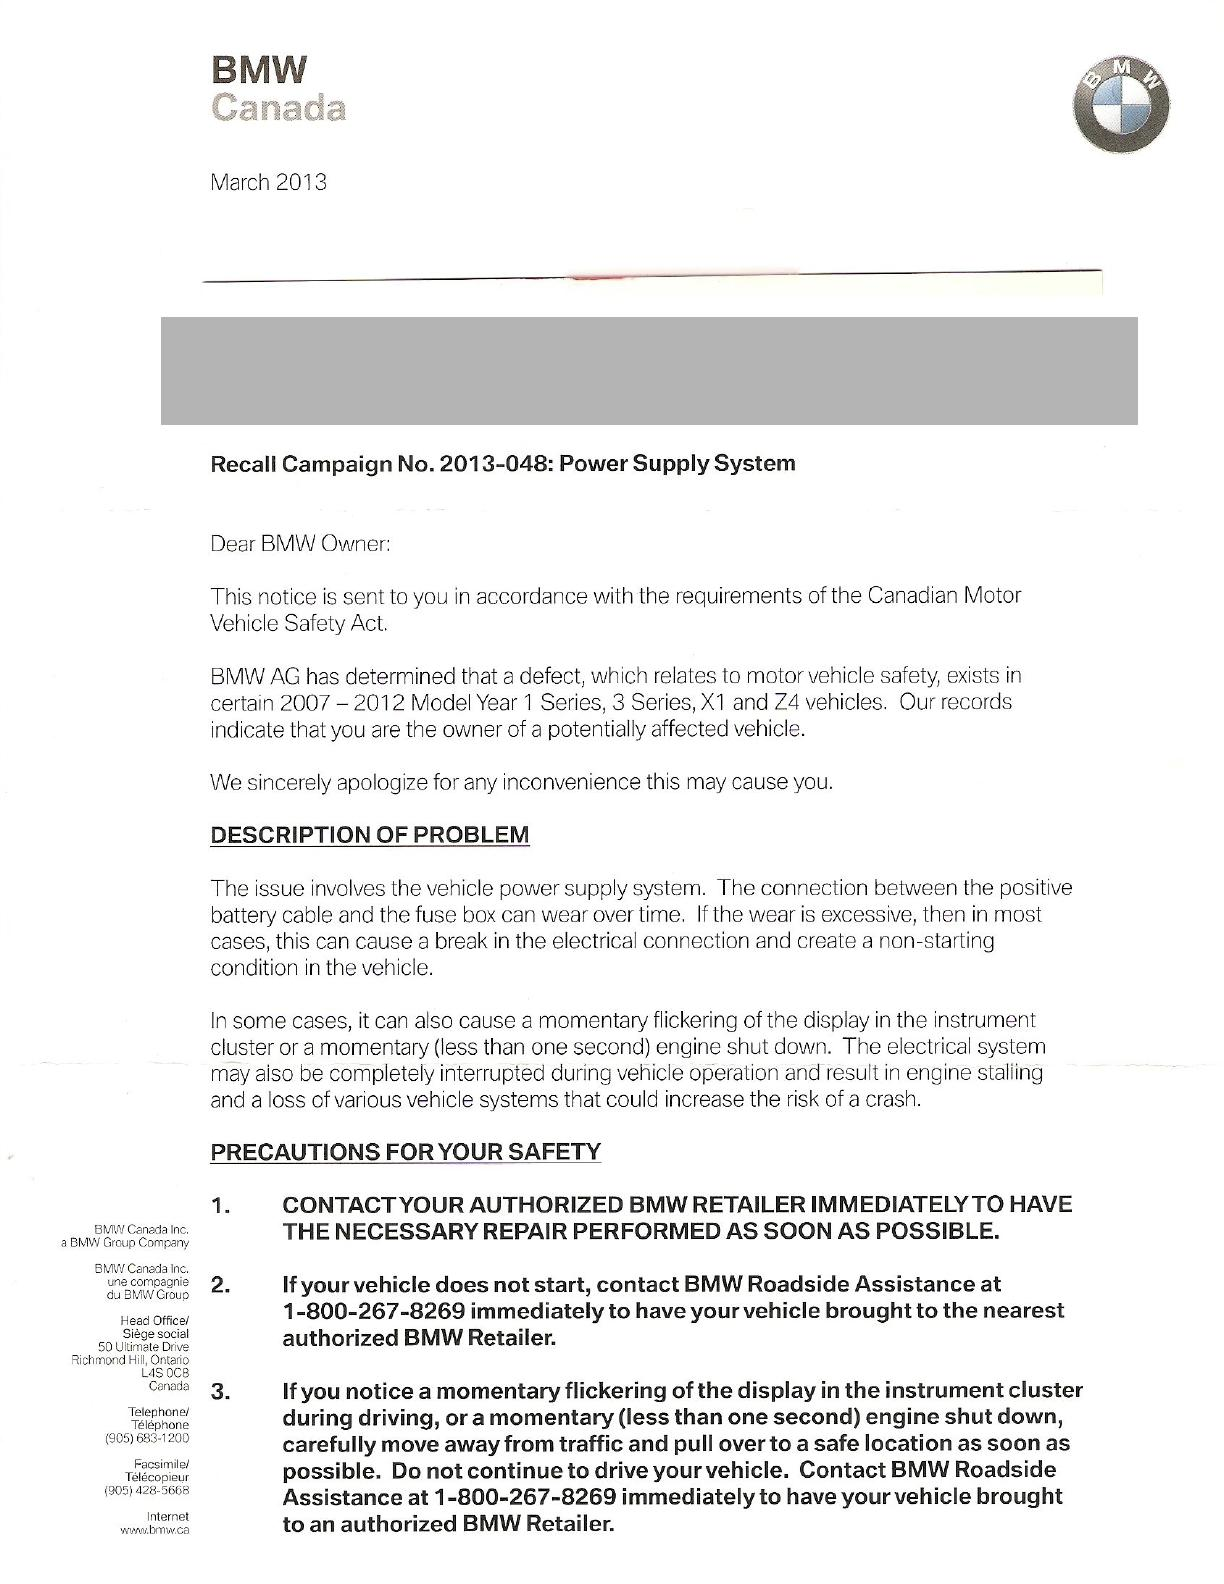 Bmw canada recall campaign no 2013 048power supply system attached images thecheapjerseys Gallery